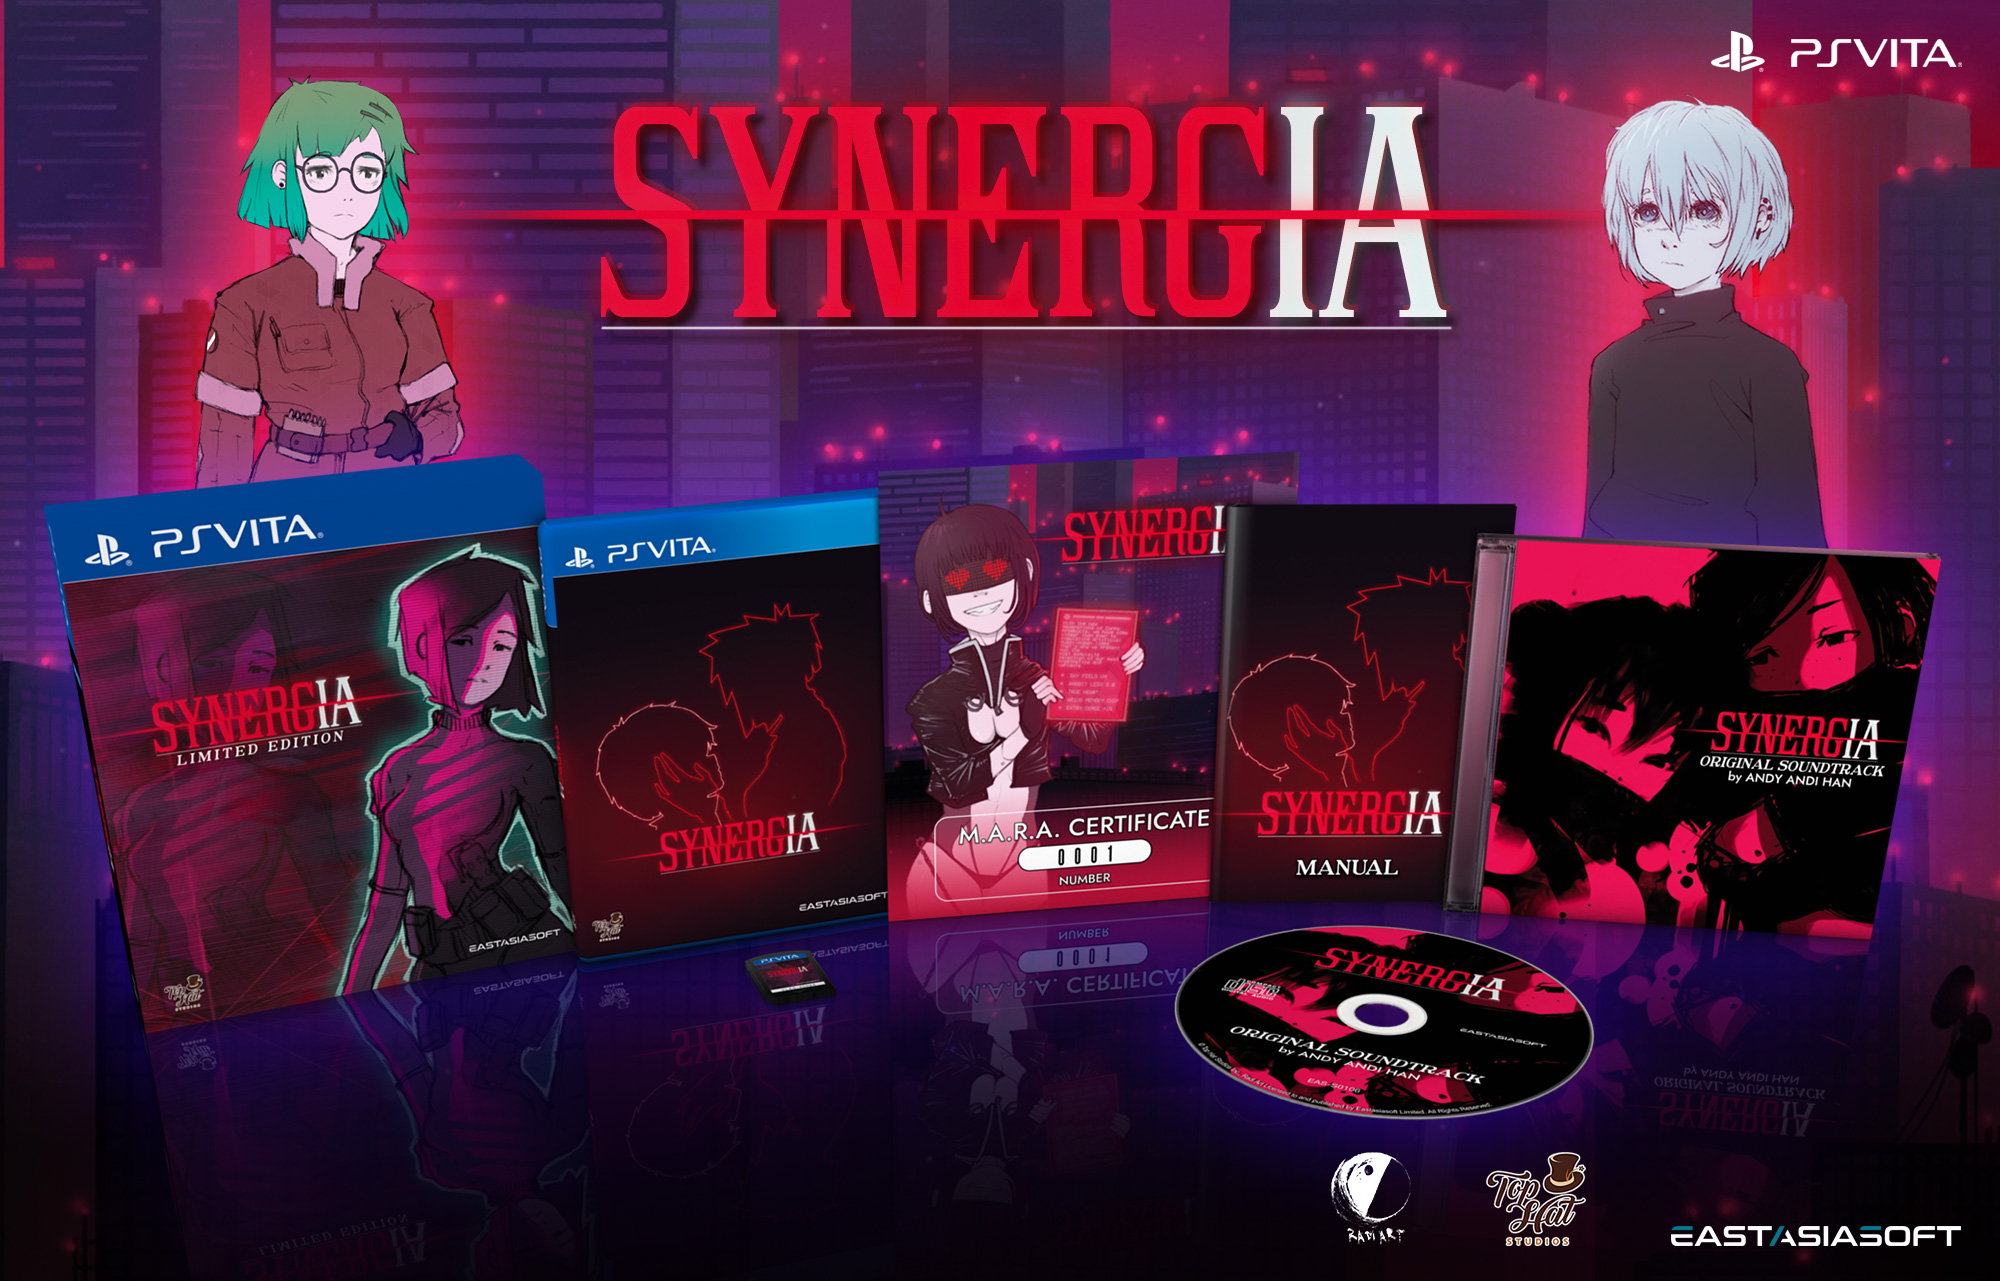 Synergia Limited Edition